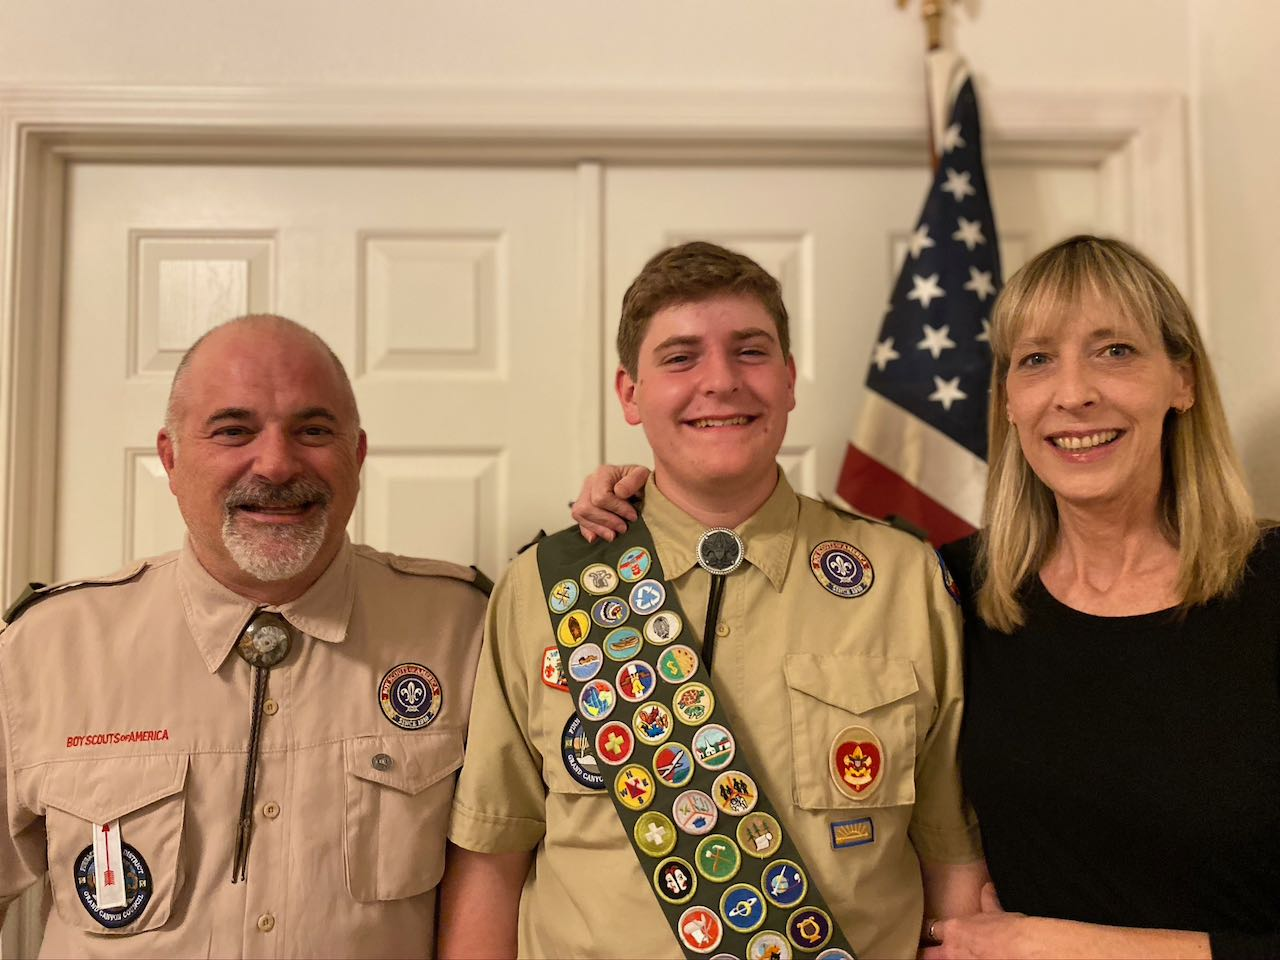 Eagle scout with parents